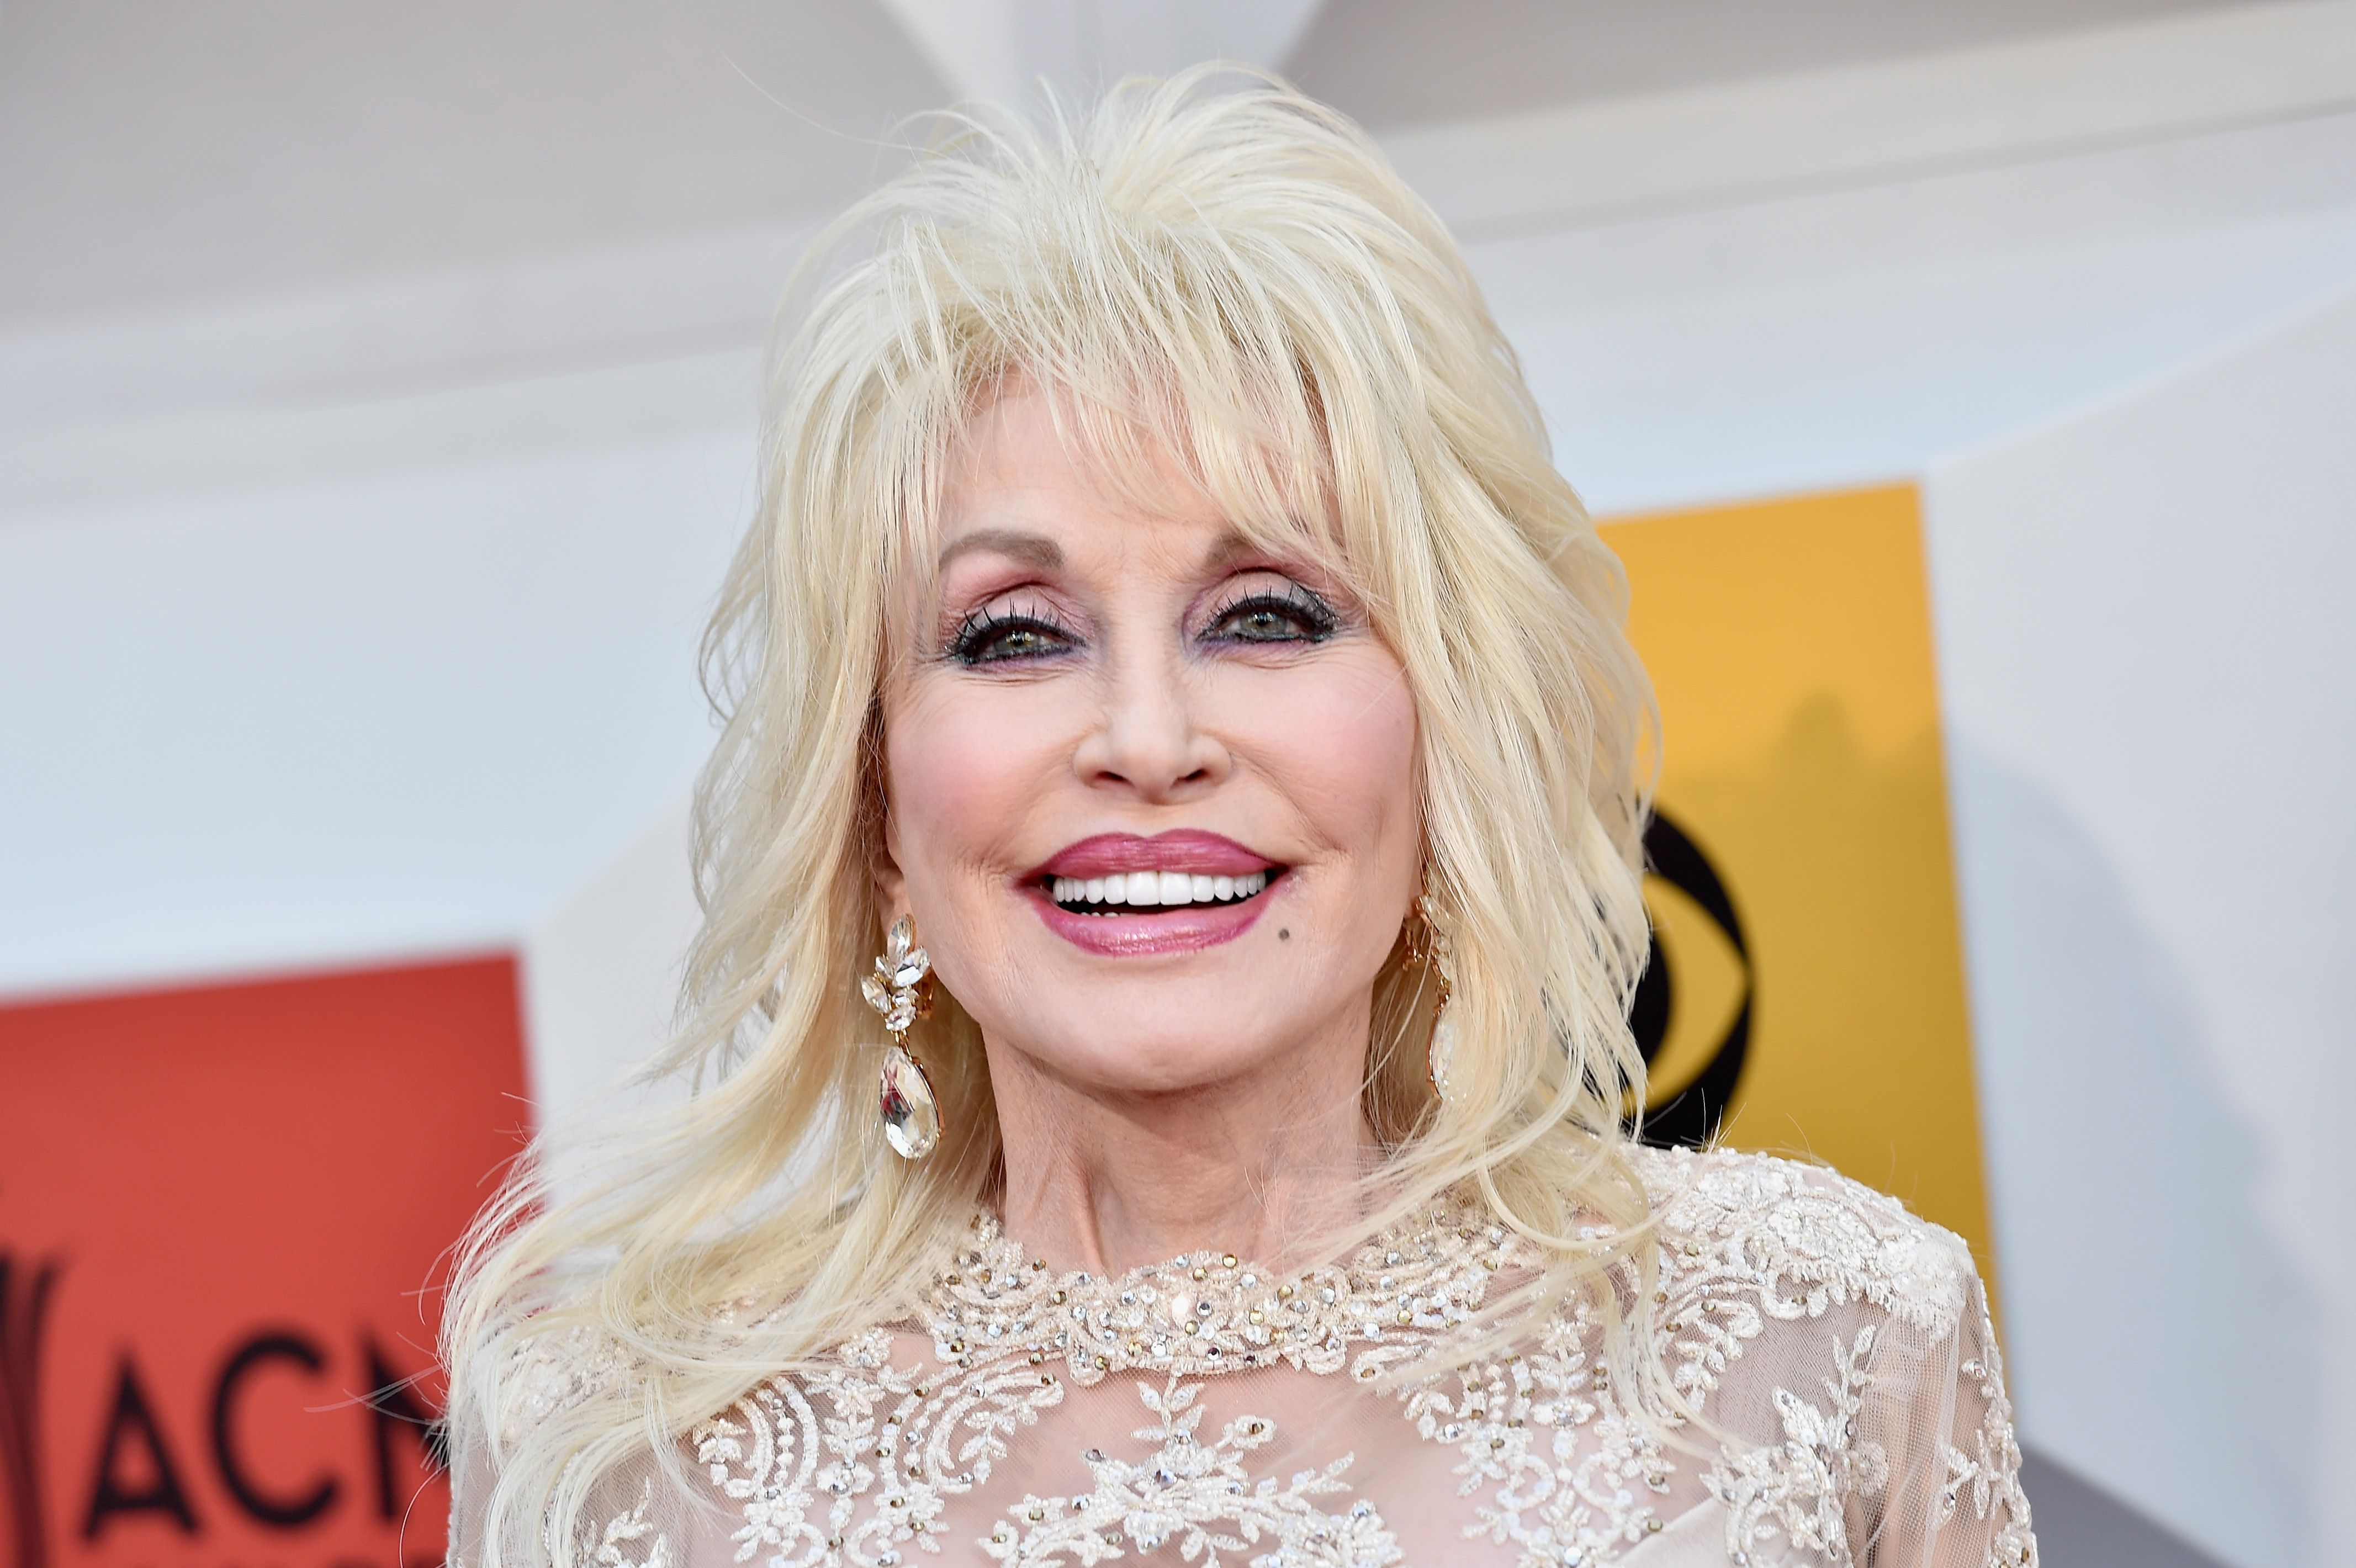 Dolly Parton Reveals Why She Always Sleeps With Her Makeup On